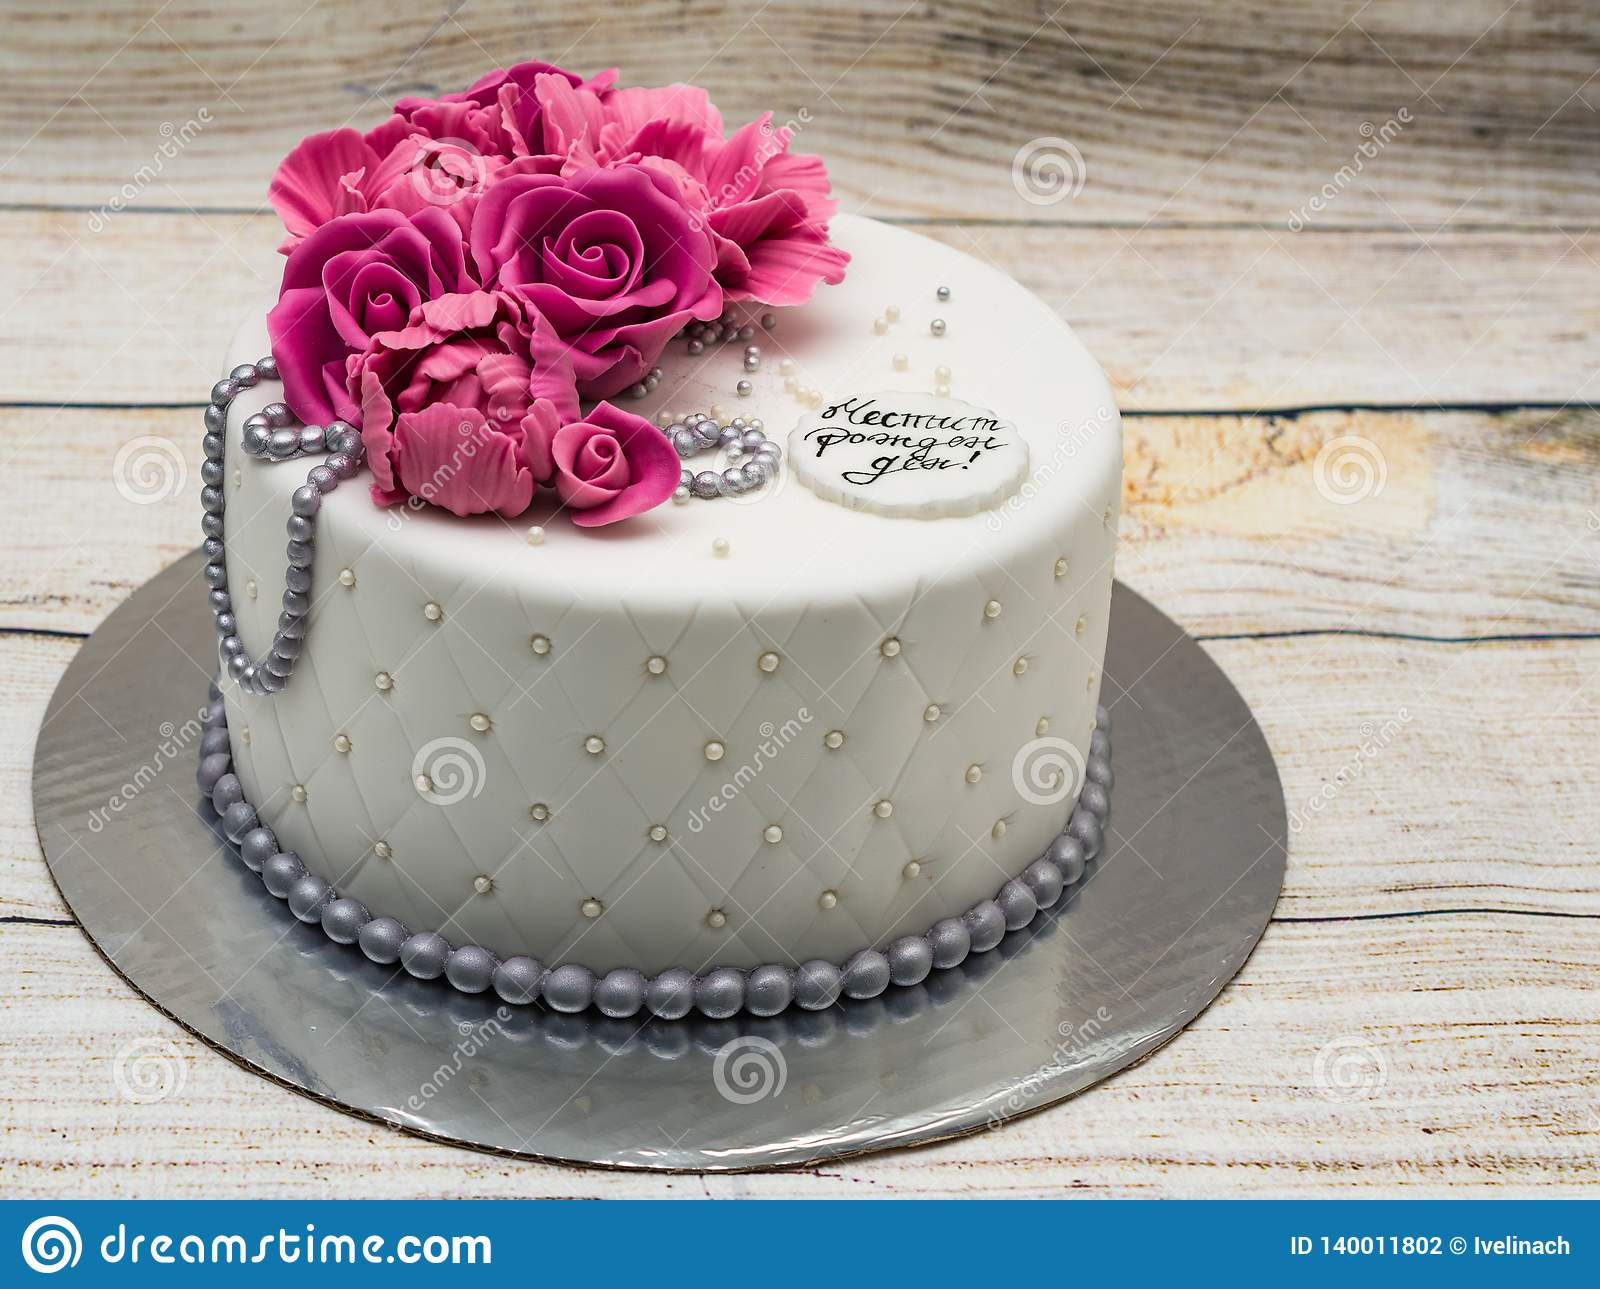 Birthday cake with fondant flowers - roses and peonies and silver pearls. Inscription `Happy Birthday`